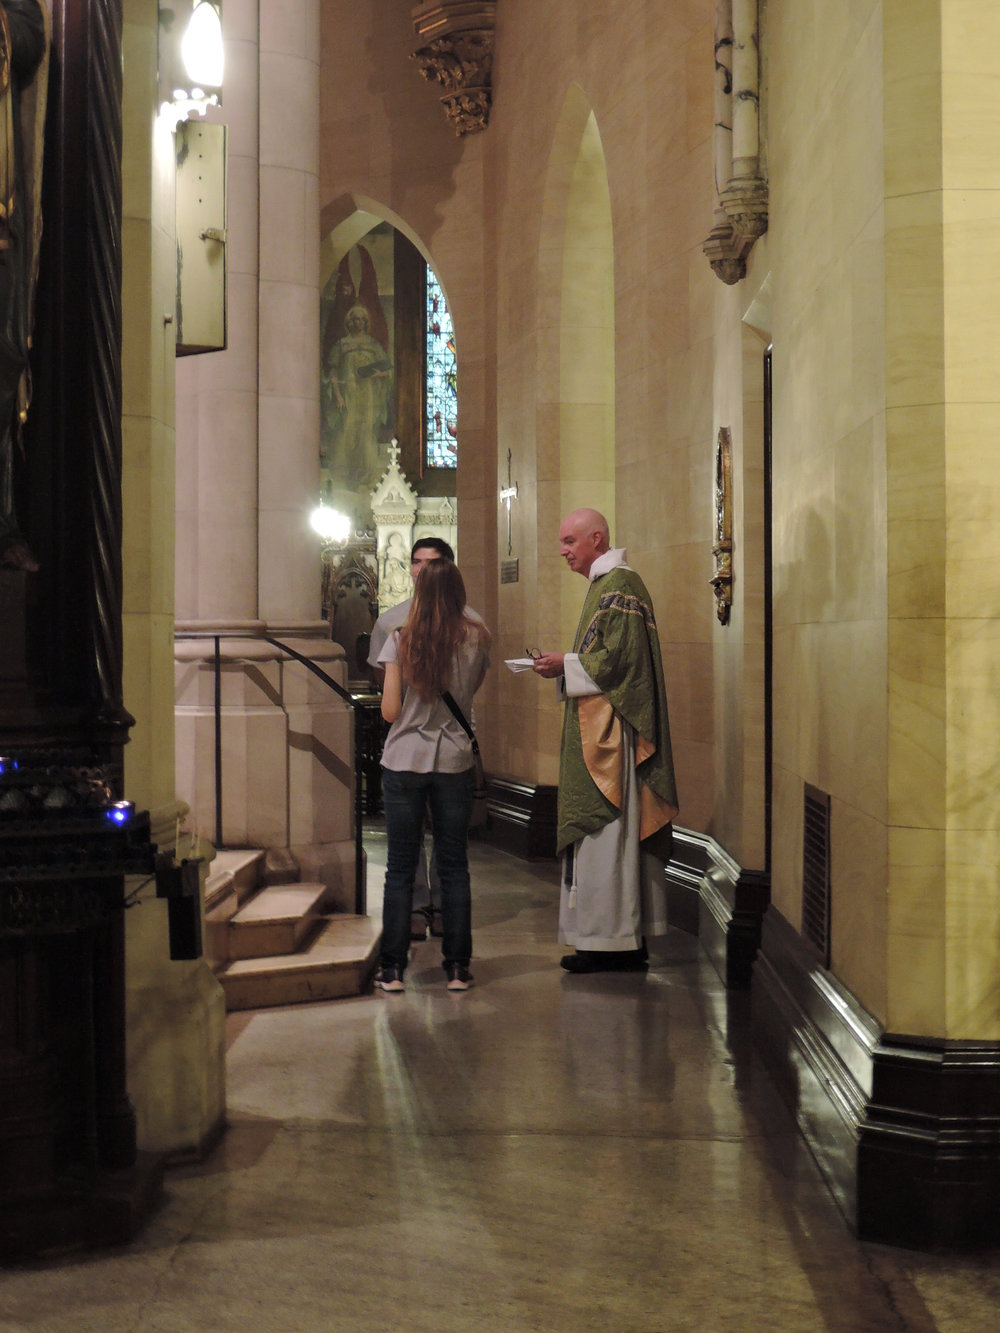 Father Gerth chats with       visitors after Mass on Sunday    .